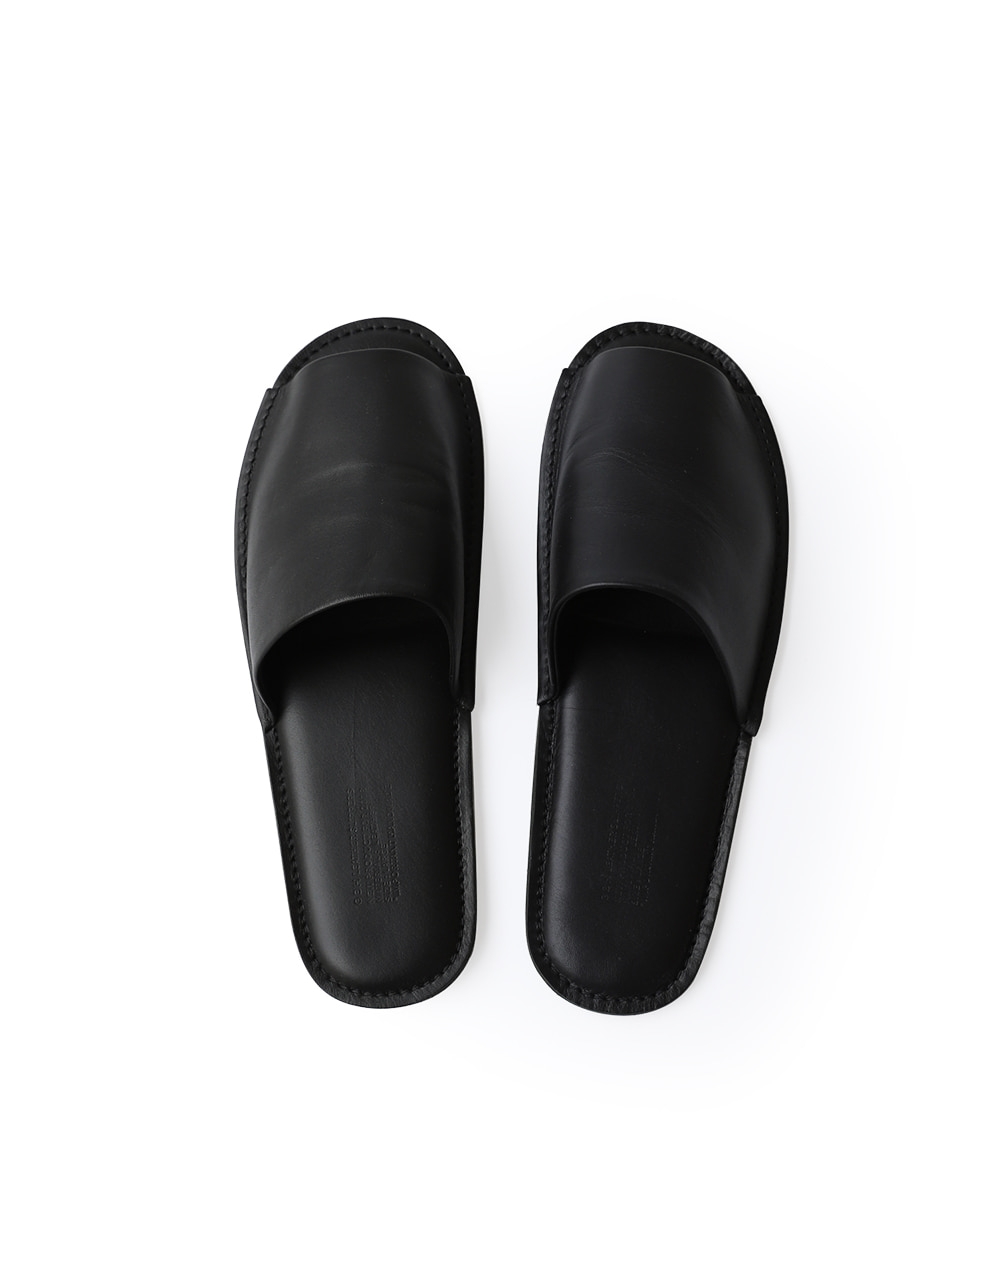 GBH HOME BLACK LEATHER SLIPPERS